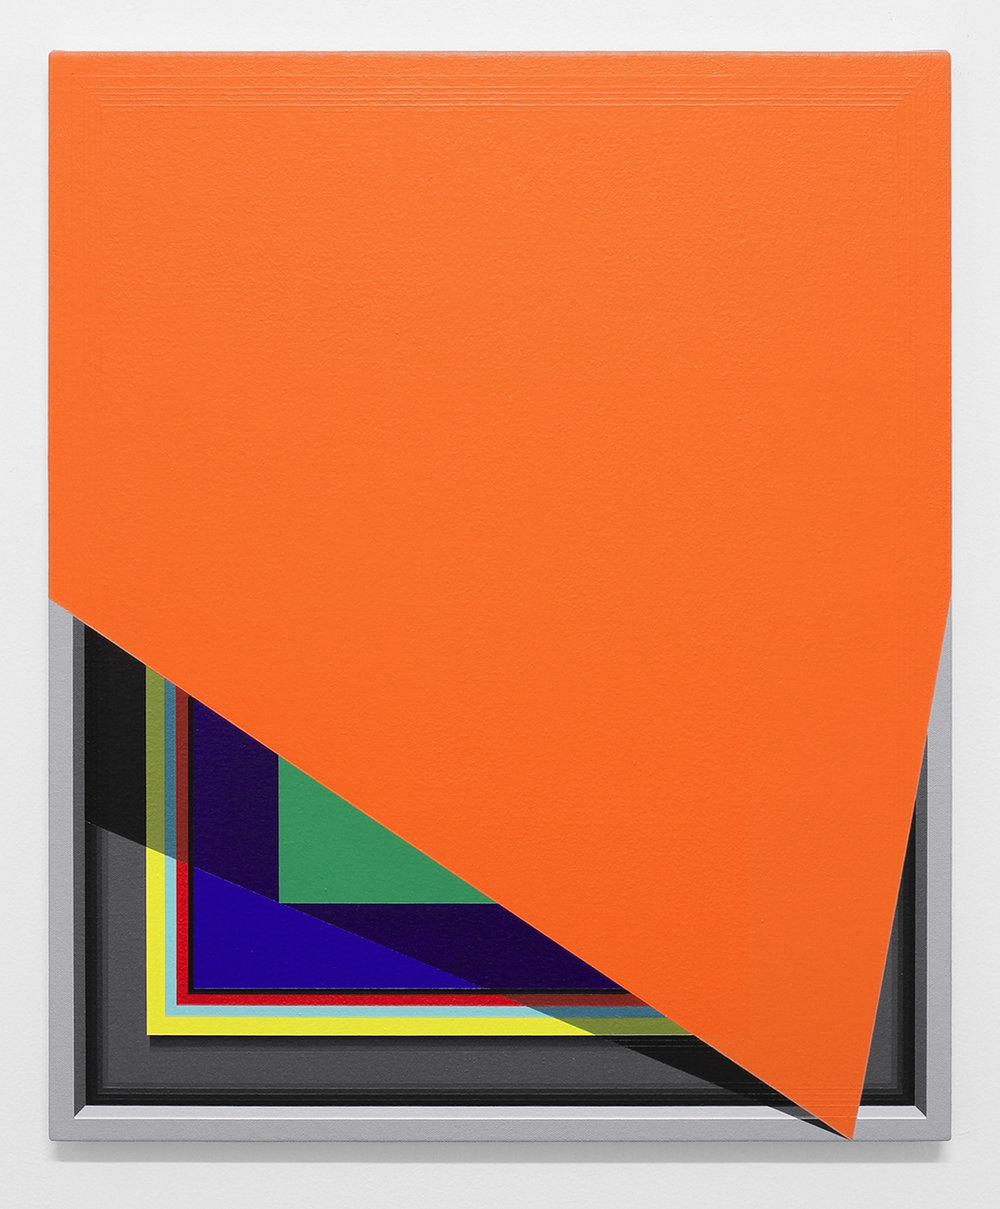 Severed Hue (Orange)   2013  Acrylic on canvas  22 x 18 inches  (55.88 x 45.72 cm)